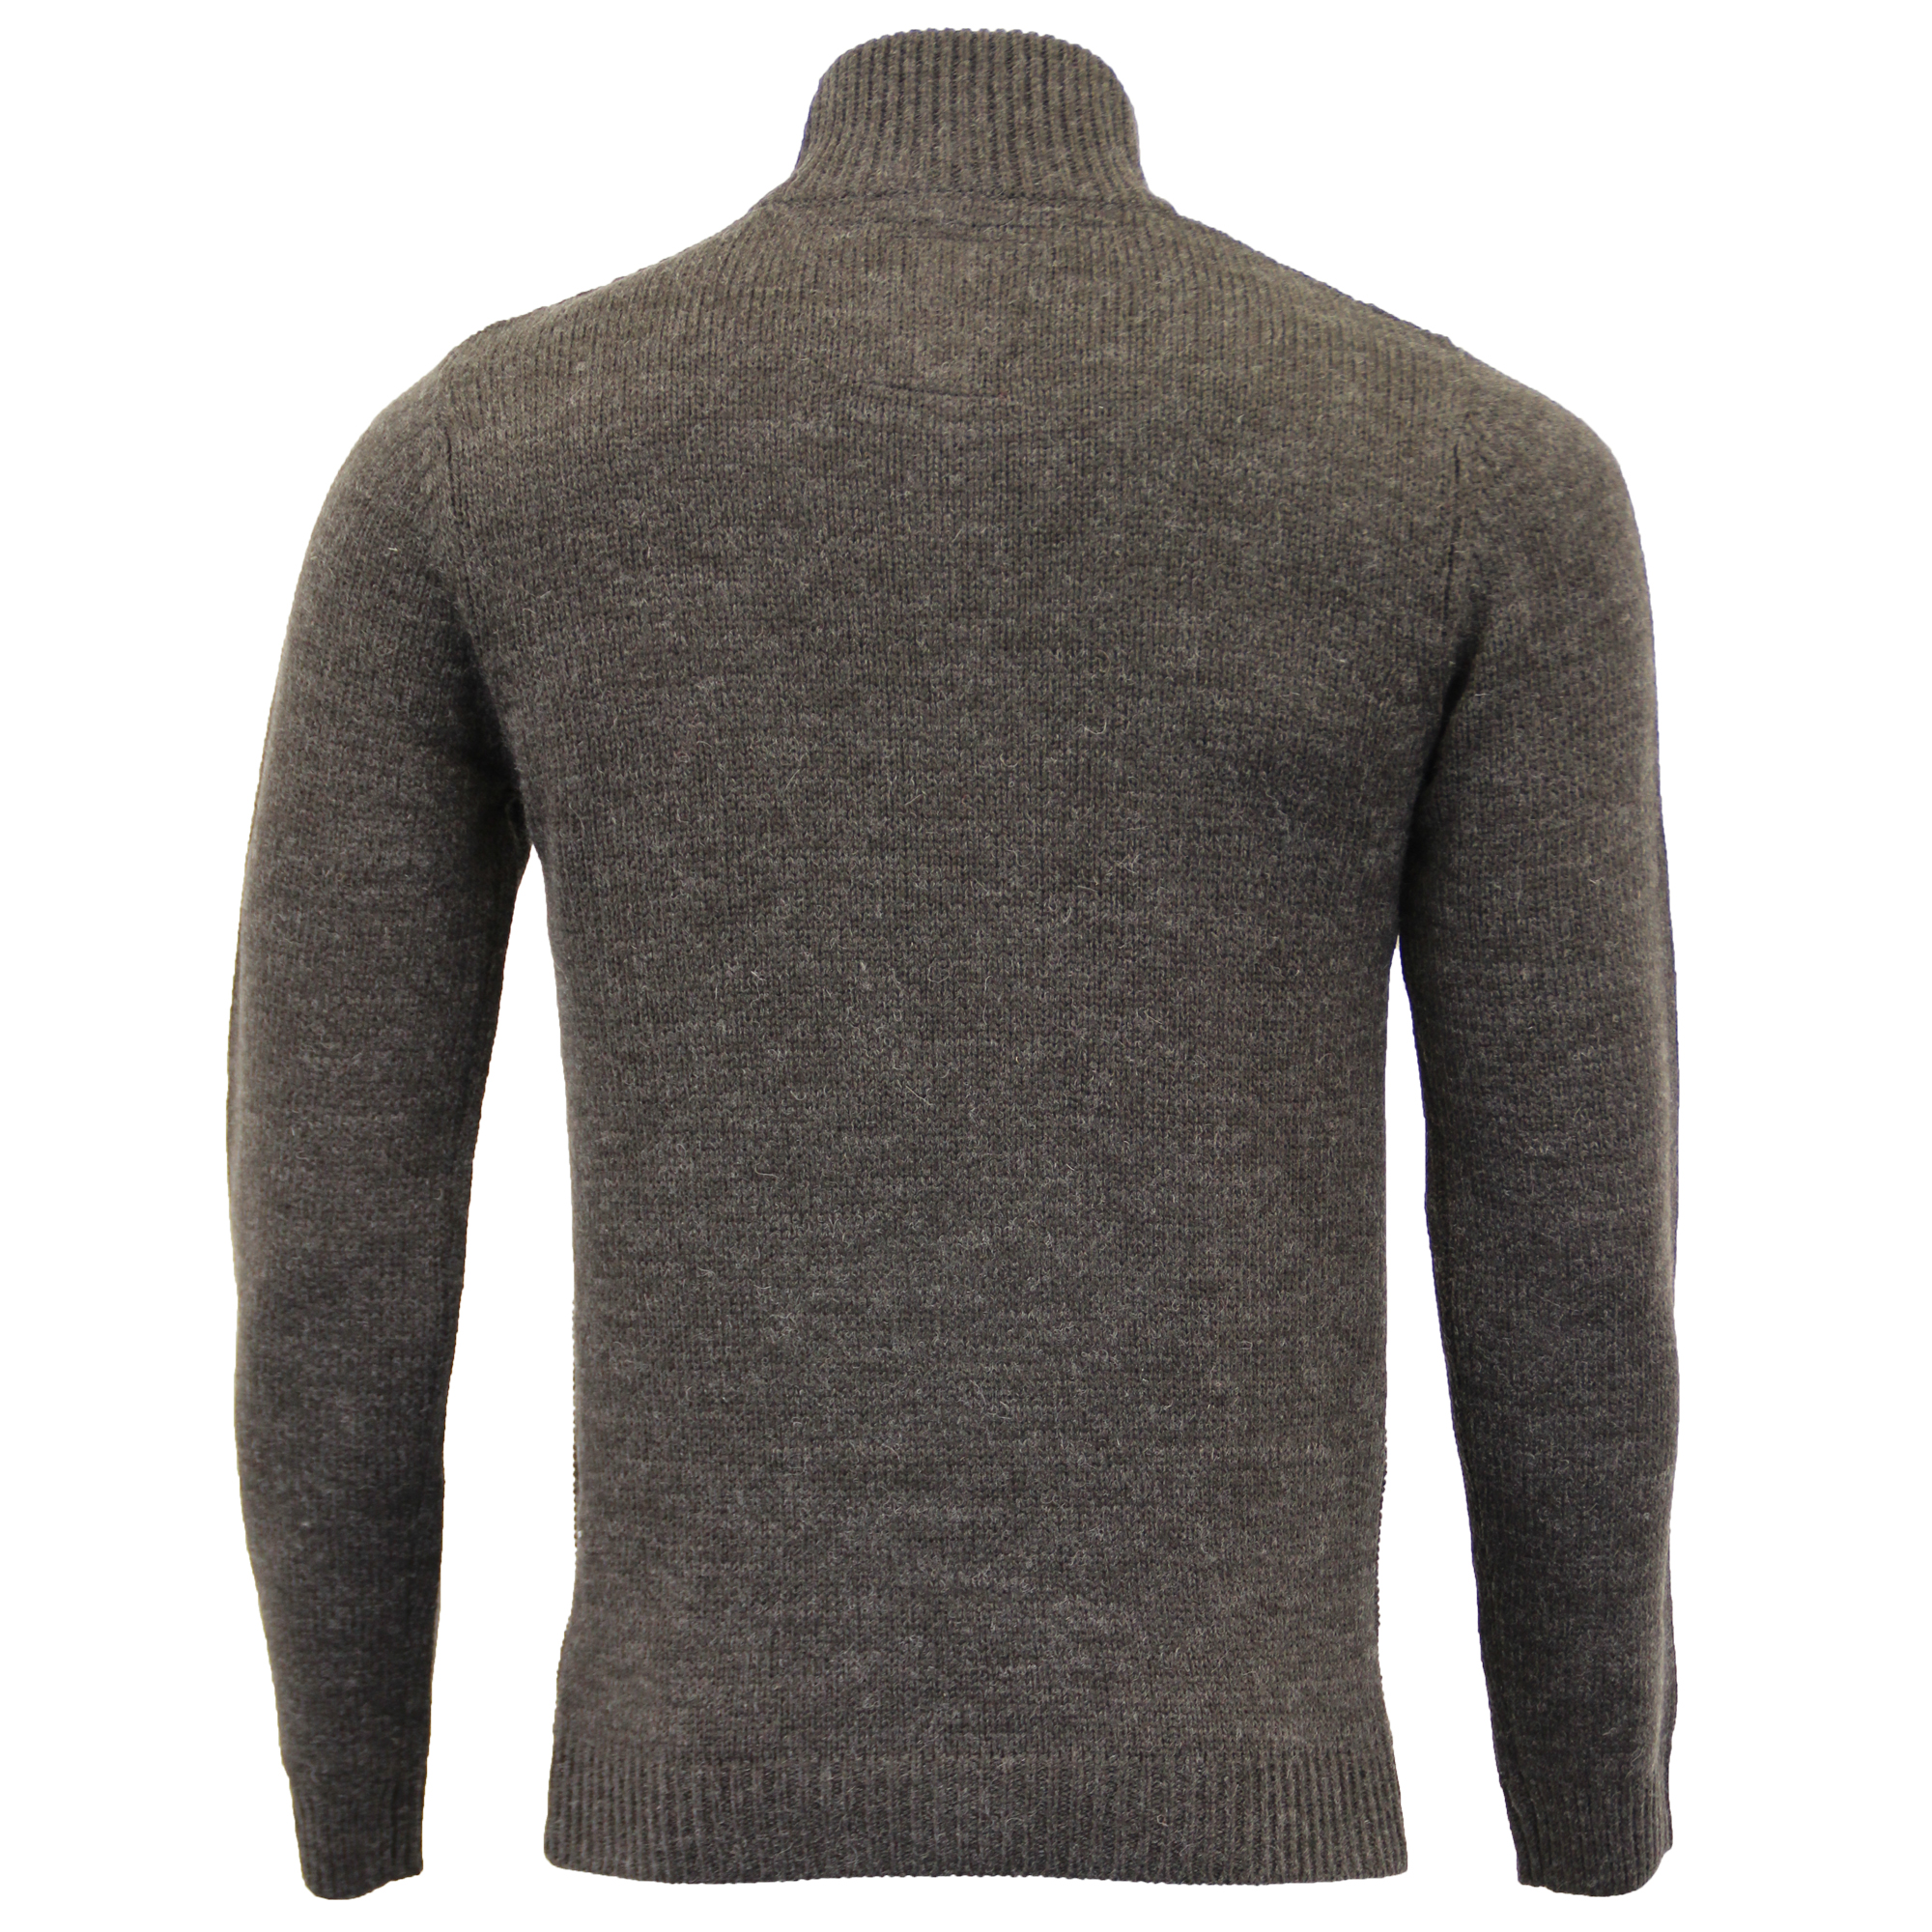 Mens-Wool-Mix-Jumper-Threadbare-Knitted-Sweater-Pullover-Top-Chunky-Zip-Winter thumbnail 18